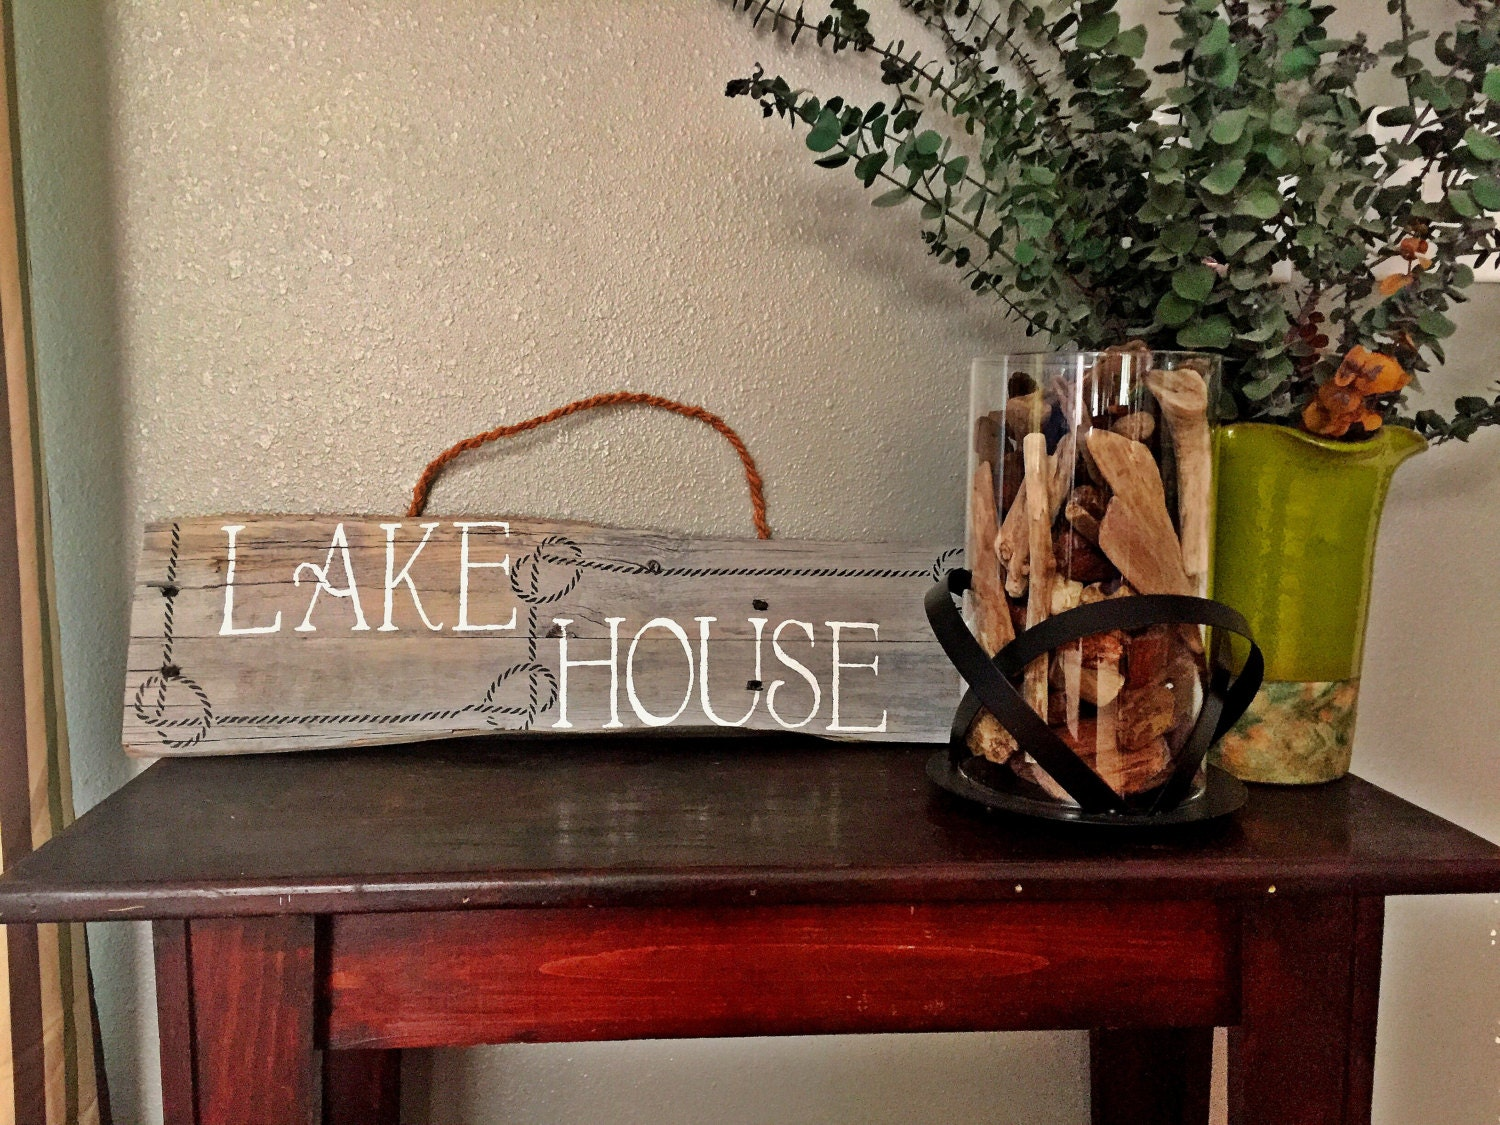 Wall Decor For Lake House : Lake house sign decor wall art